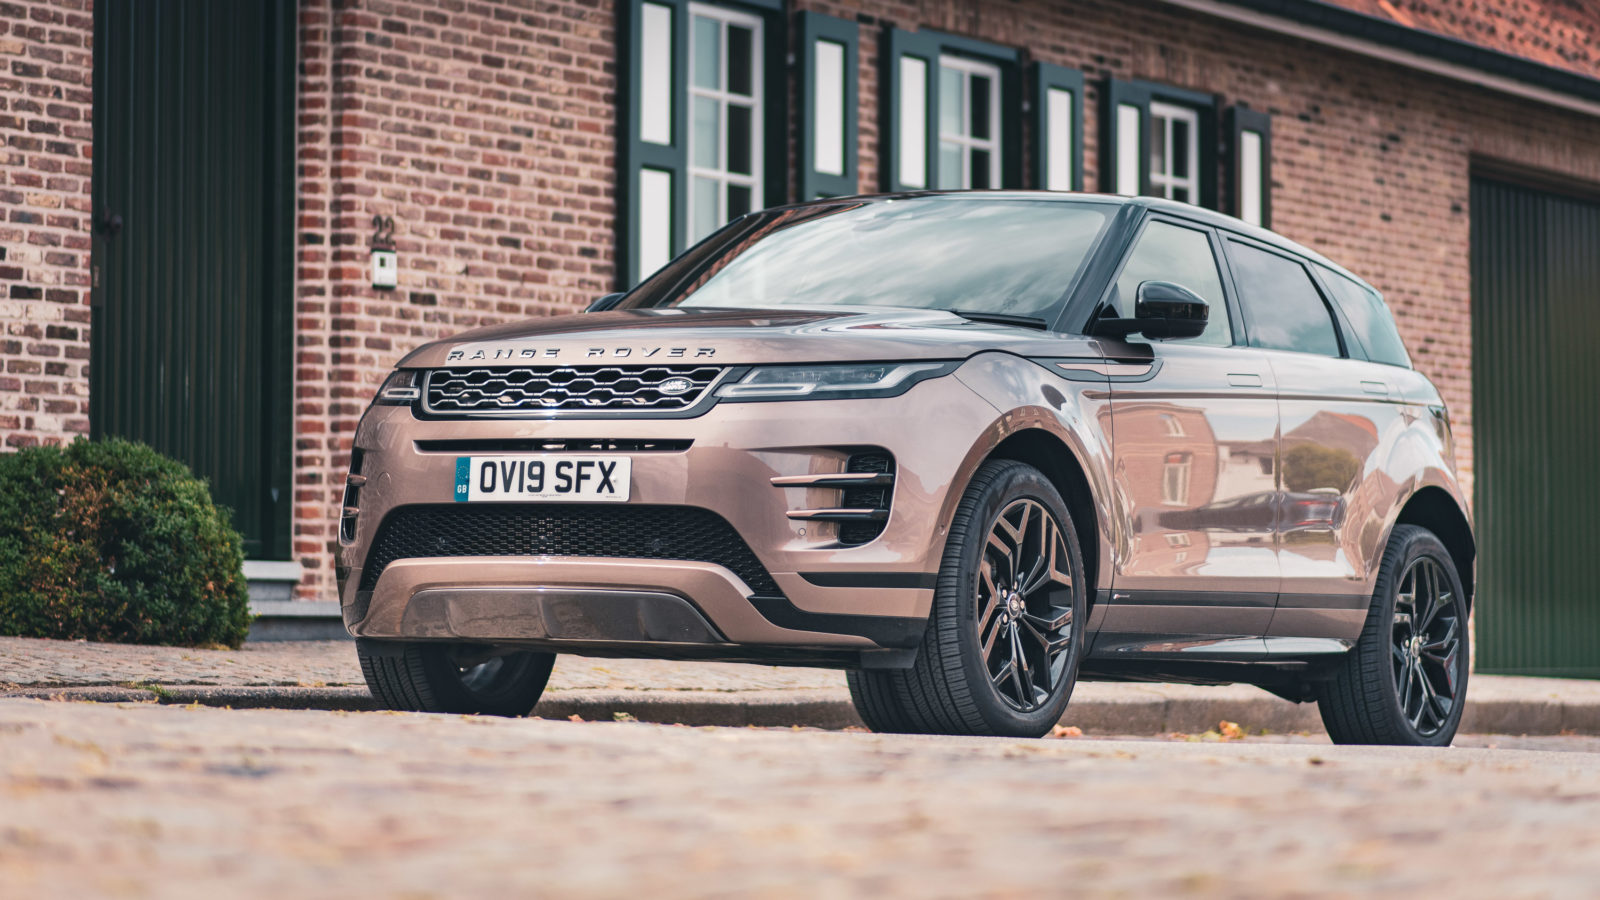 Beauty plus brawn: The 2020 Range Rover Evoque makes its way to India